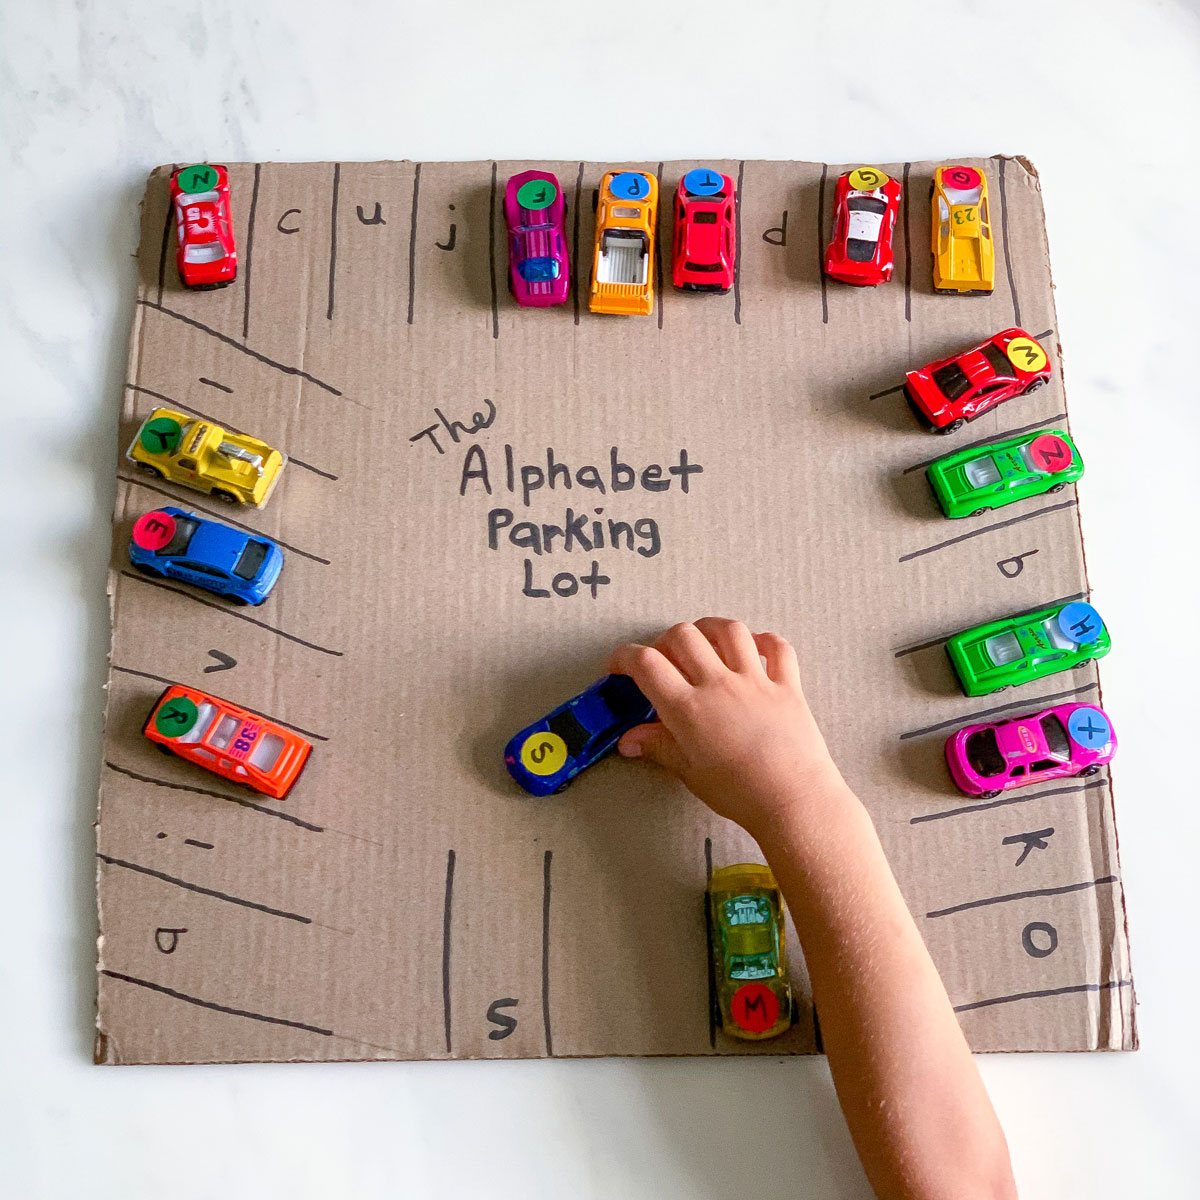 Uppercase and Lowercase Letters: ABC Parking Lot